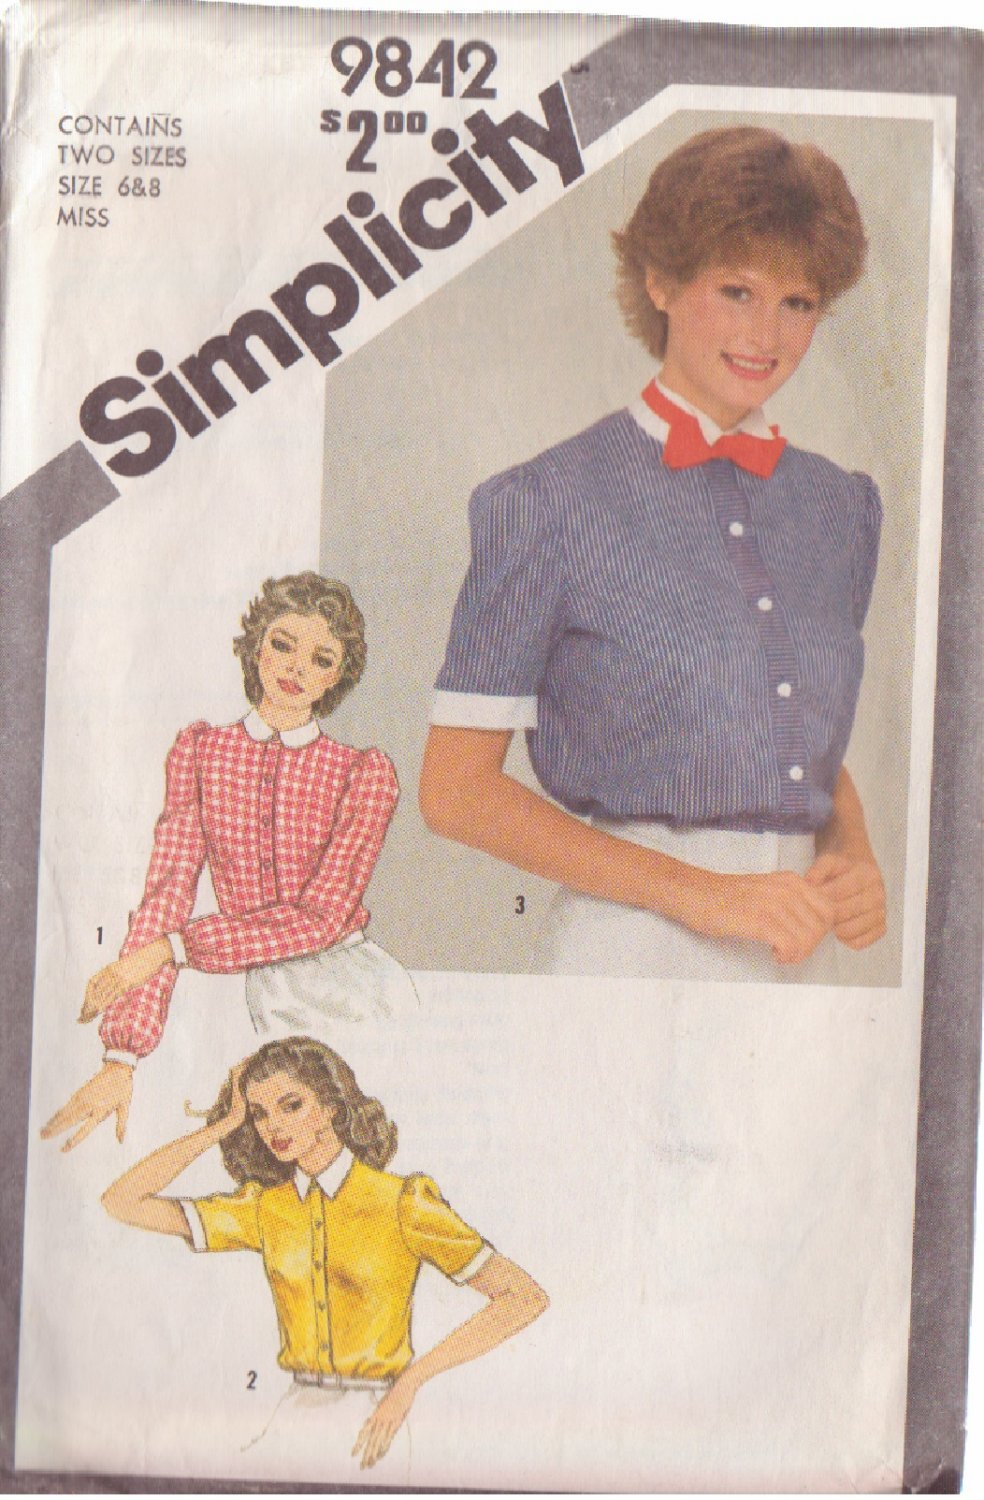 SIMPLICITY 1980 PATTERN 9842 SIZE 6/8 MISSES' SHIRT WITH COLLAR VARIATIONS & BOW TIE